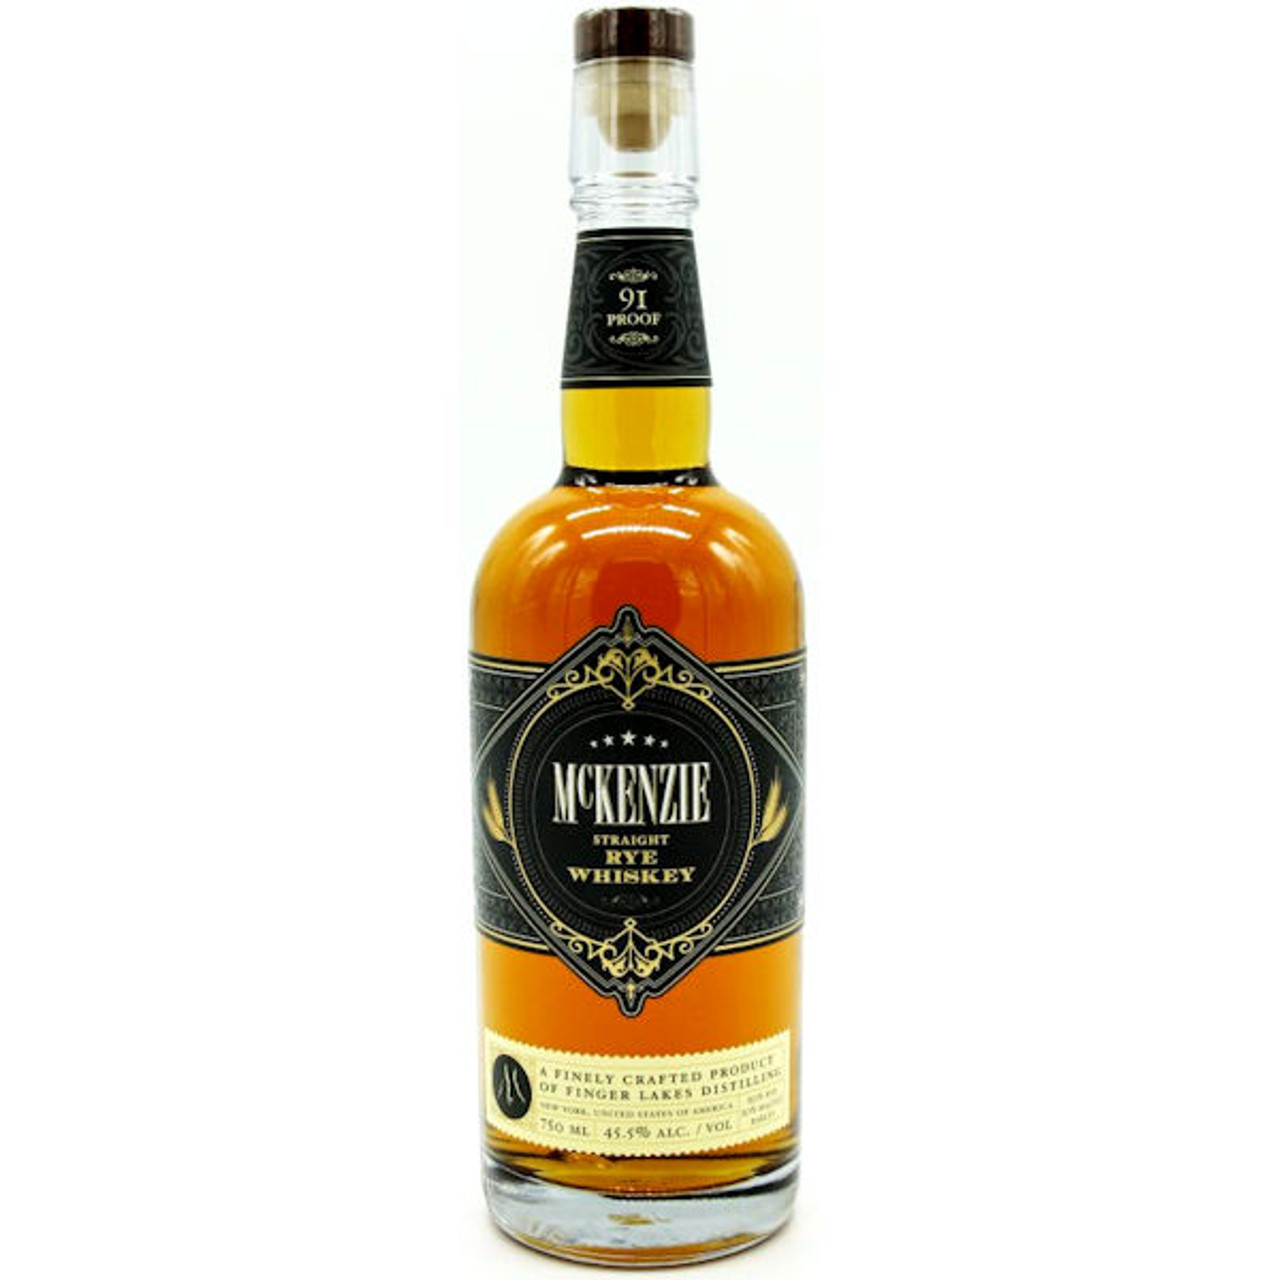 McKenzie Rye Whiskey 750ml